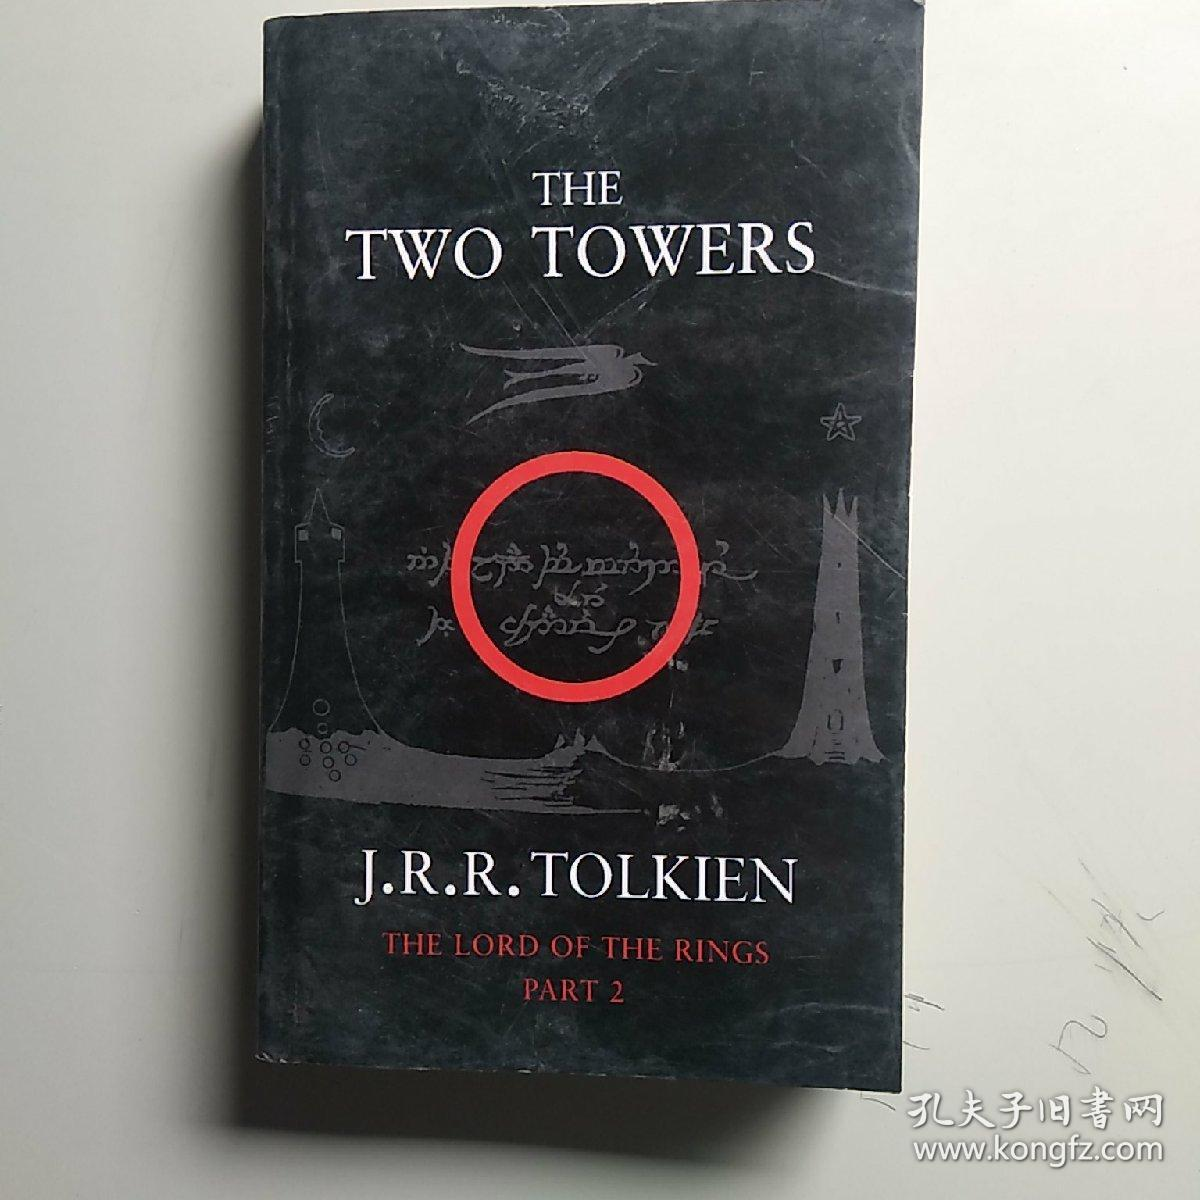 The Two Towers:The Lord of the Rings, Part 2